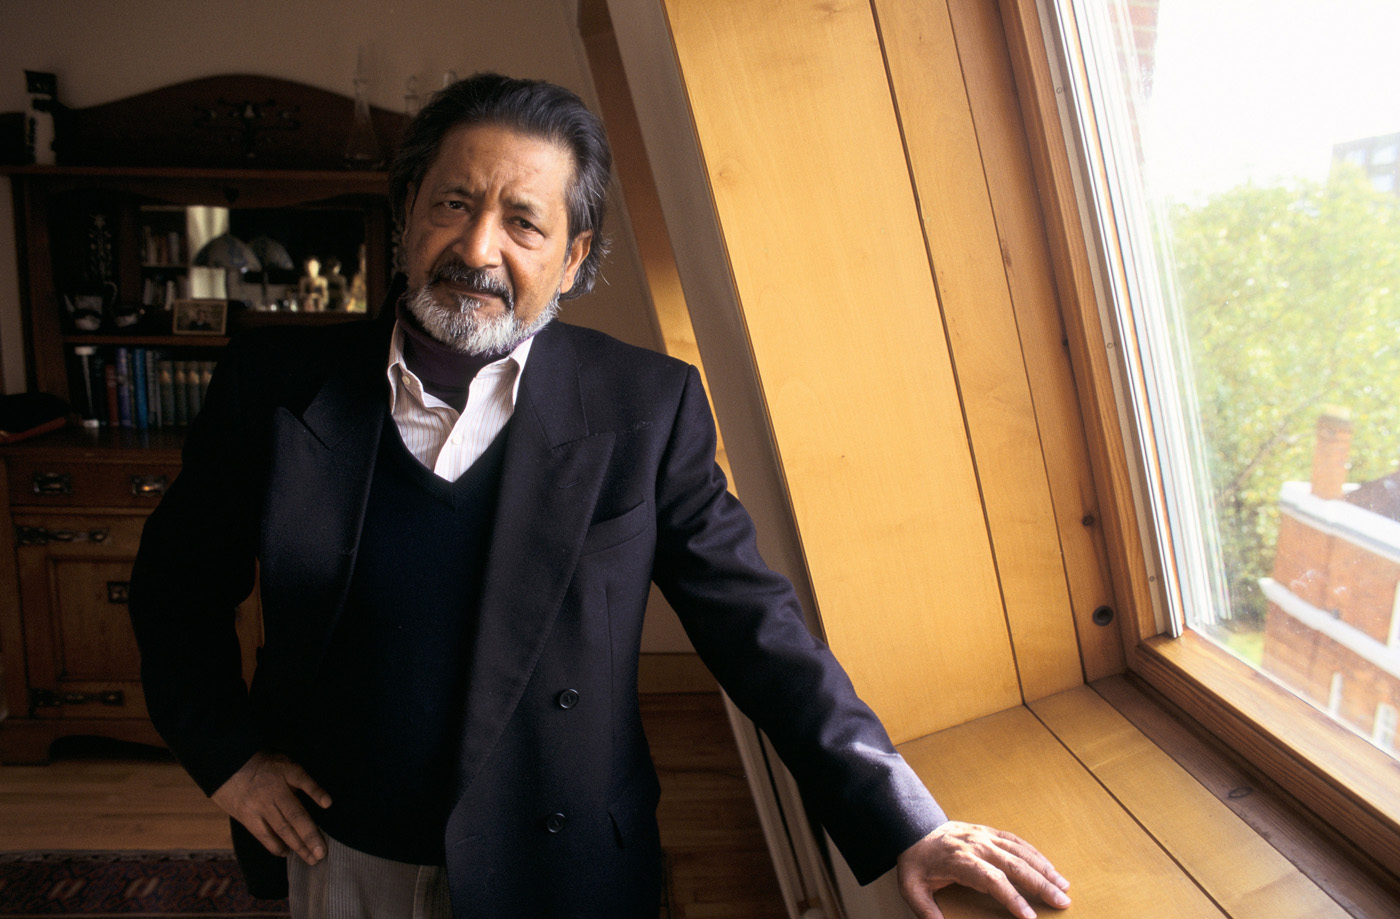 The anthology features such literary greats as VS Naipaul